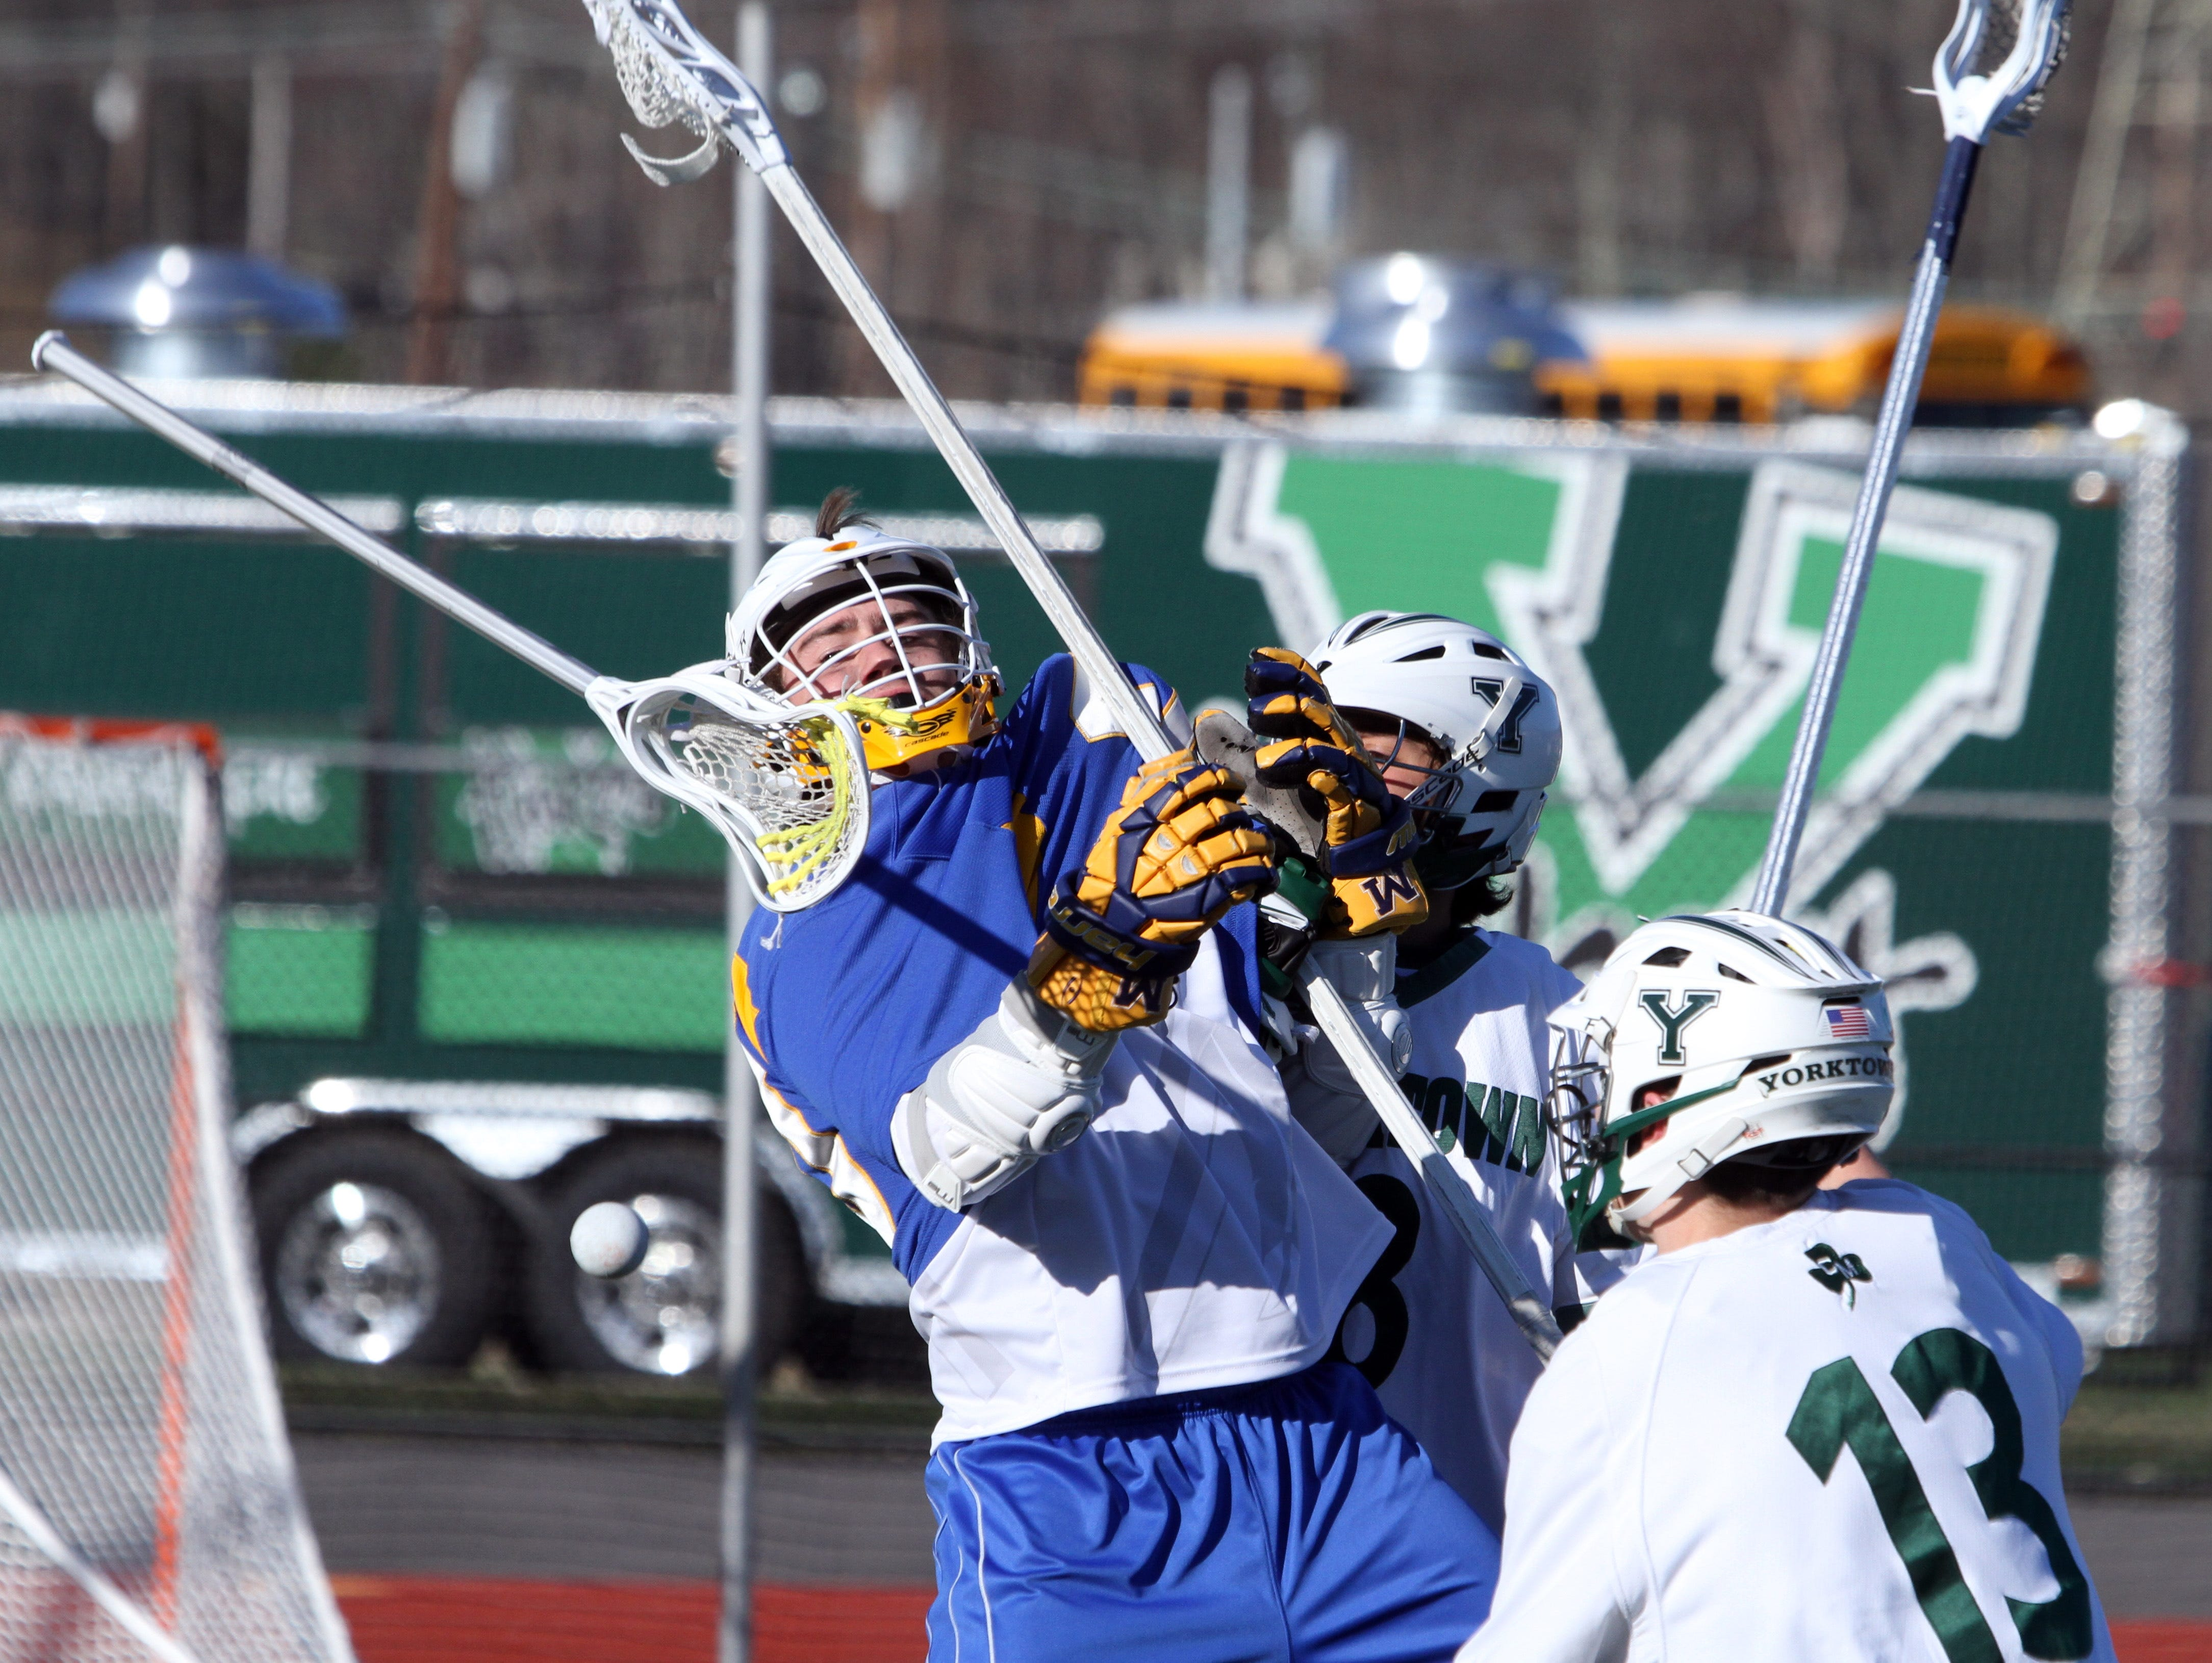 Mahopac's Tom Murray loses his stick while being pressured by Yorktown's Joseph Brancato and Jose Boyer during a varsity lacrosse game at Yorktown High School March 29, 2016. Yorktown defeated Mahopac 15-8.